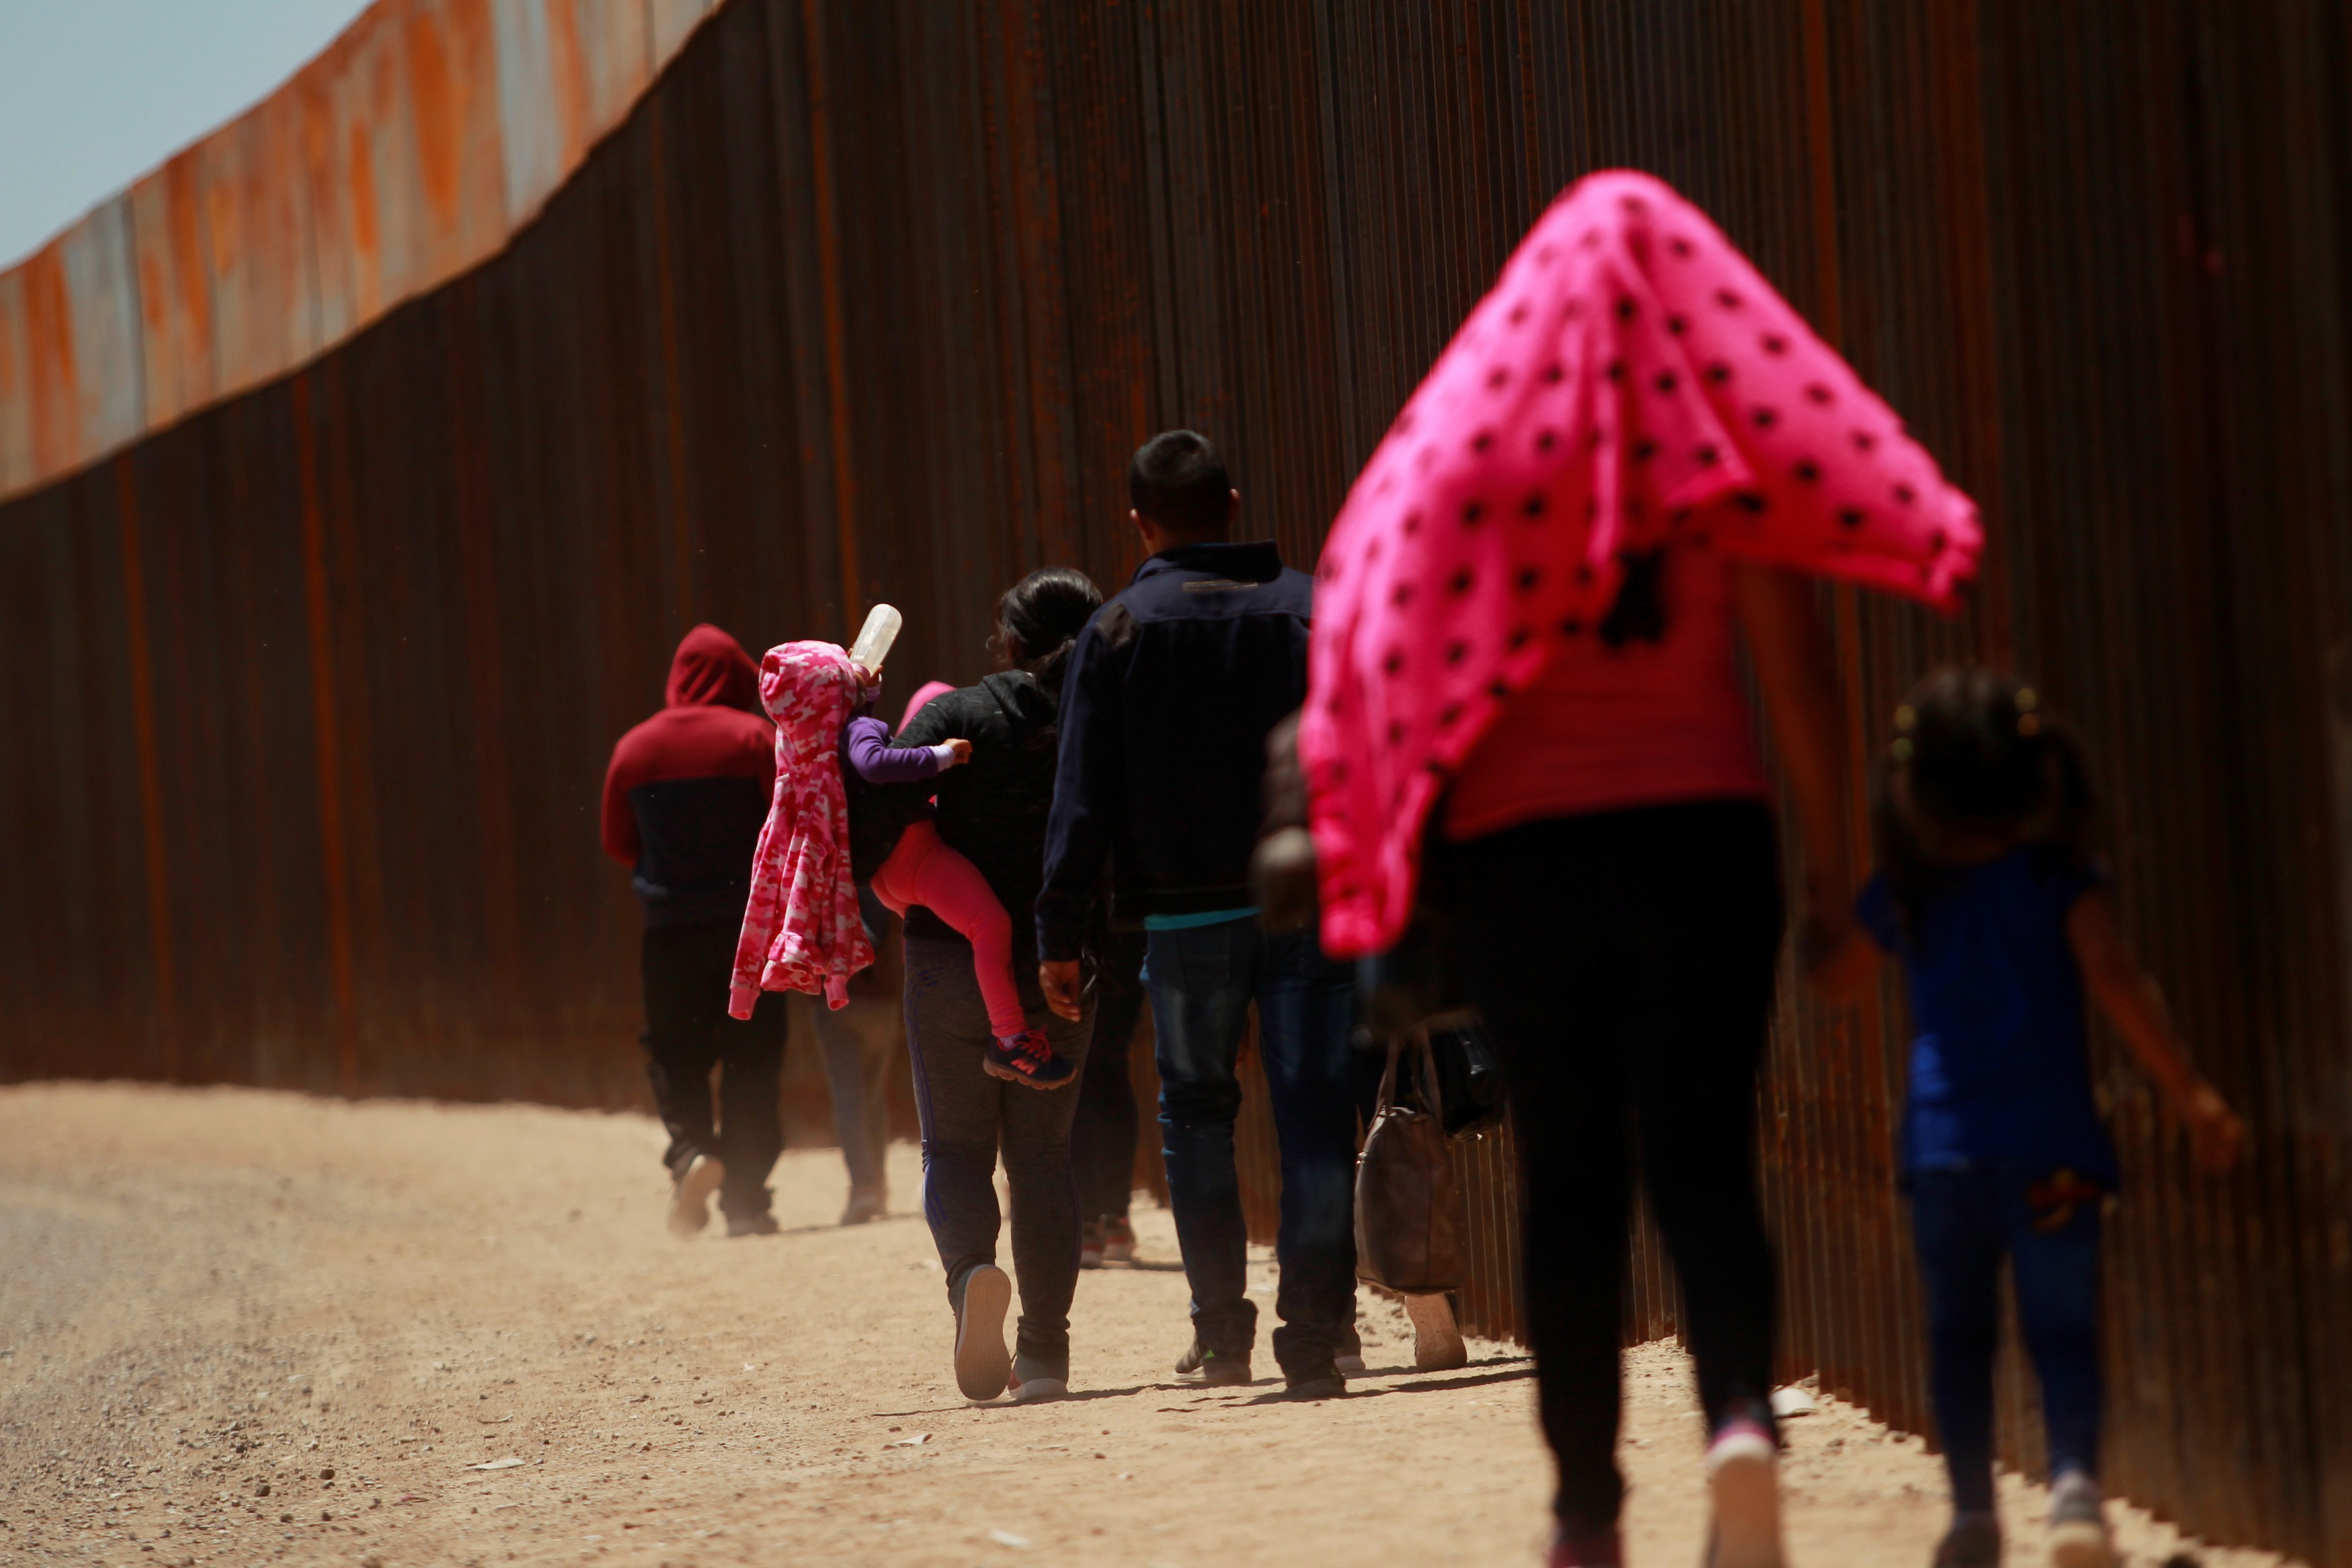 Toddler apprehended at the U.S.-Mexico border dies after weeks in hospital